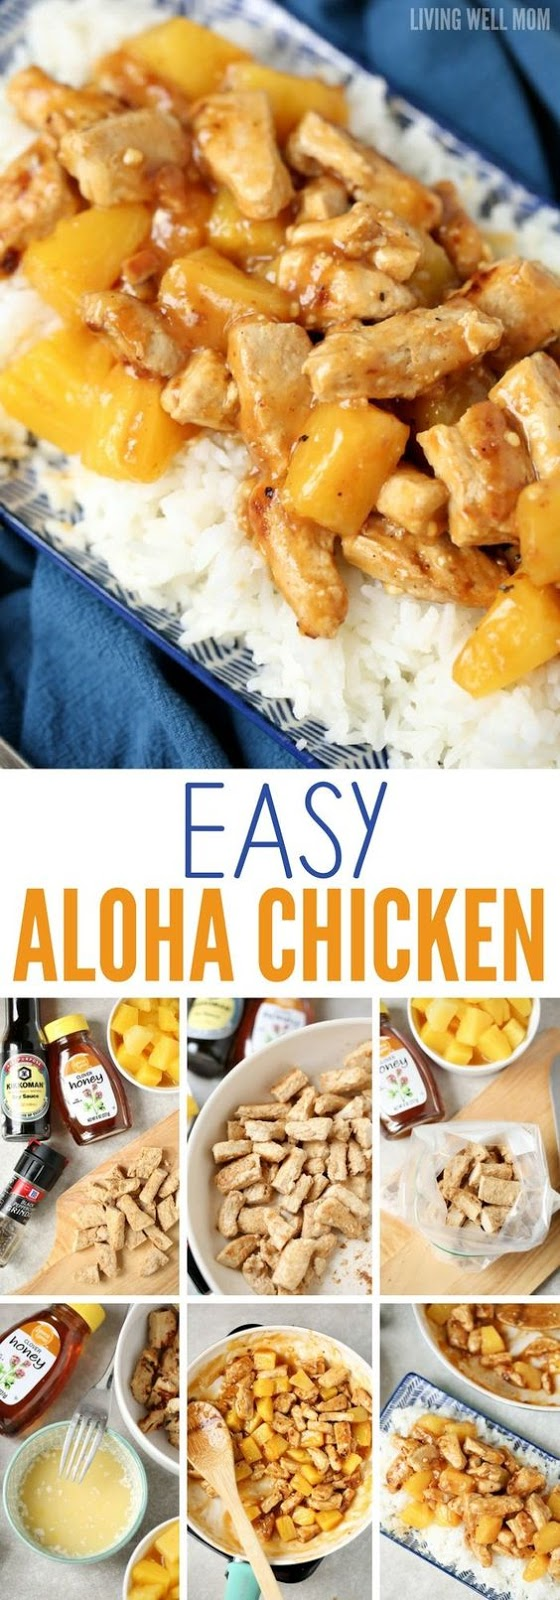 Easy aloha Chicken Dinner #aloha #chicken #chickenrecipes #chickendinner #quickdinnerrecipes #dinnerrecipes